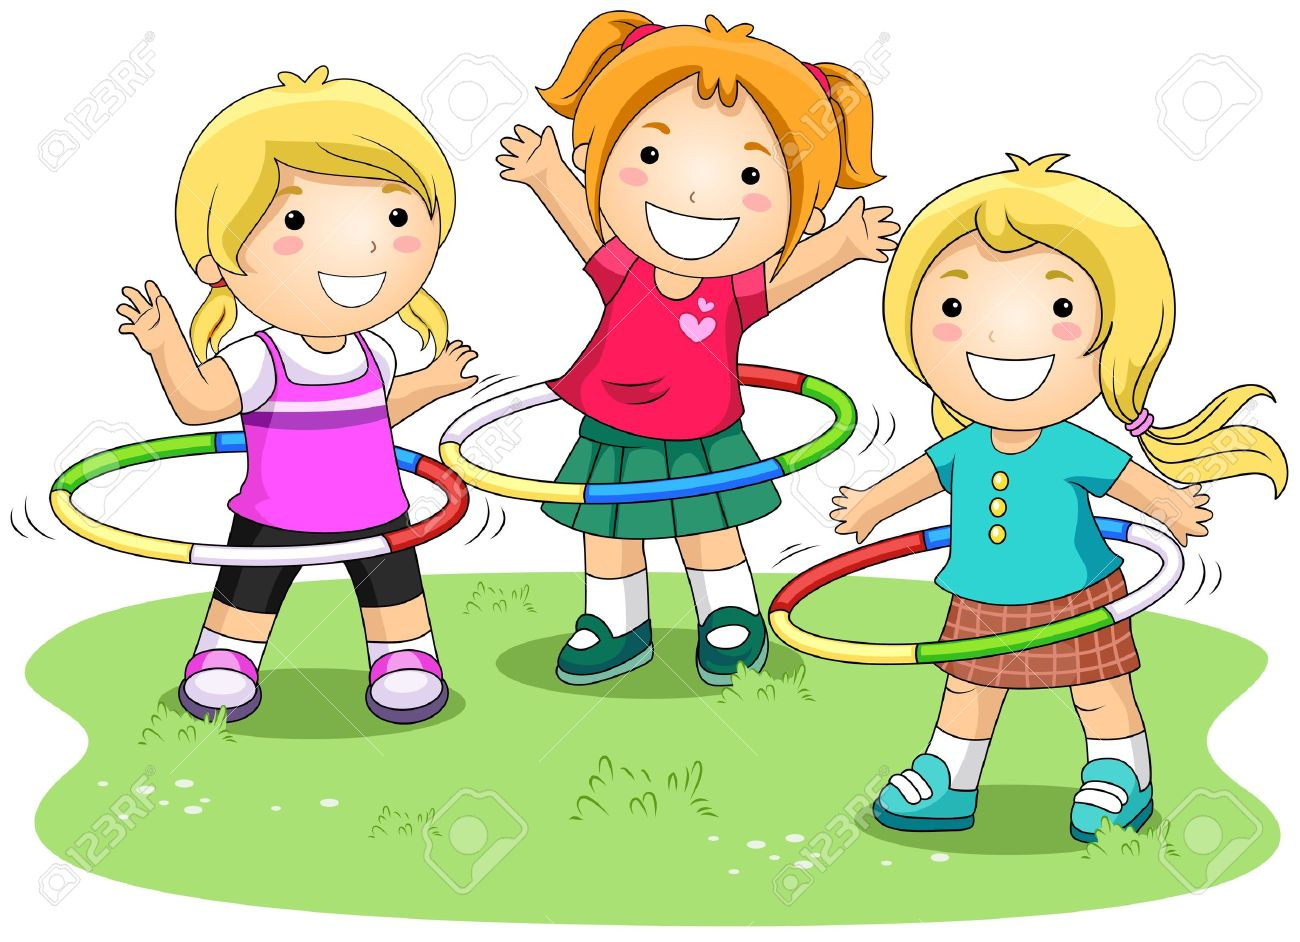 Child play clipart graphic library download 28+ Kids Playing Clipart   ClipartLook graphic library download